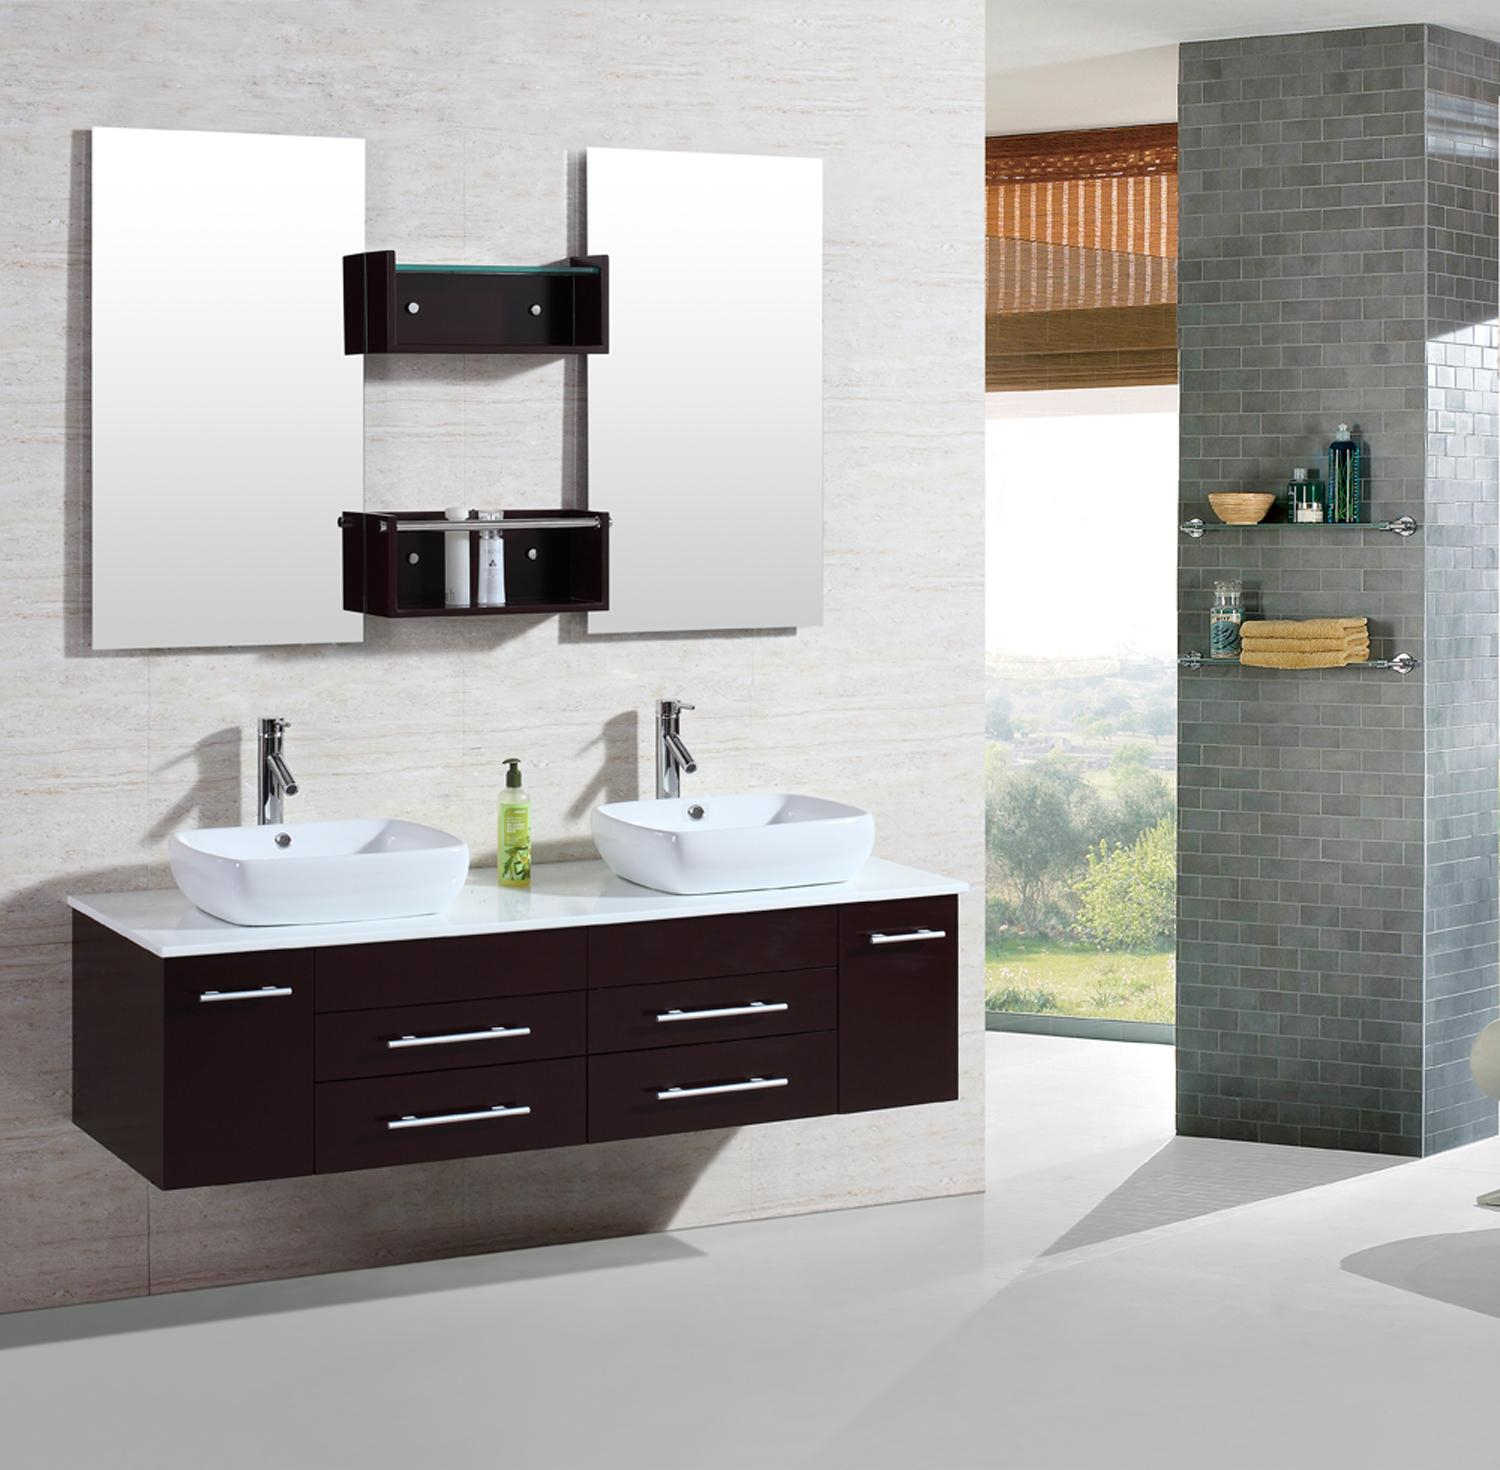 "Glamorous 60"" Modern Bathroom Double Vanities Cabinet Floating Vessel Sink W with Unique Bathroom Double Sink Cabinets"